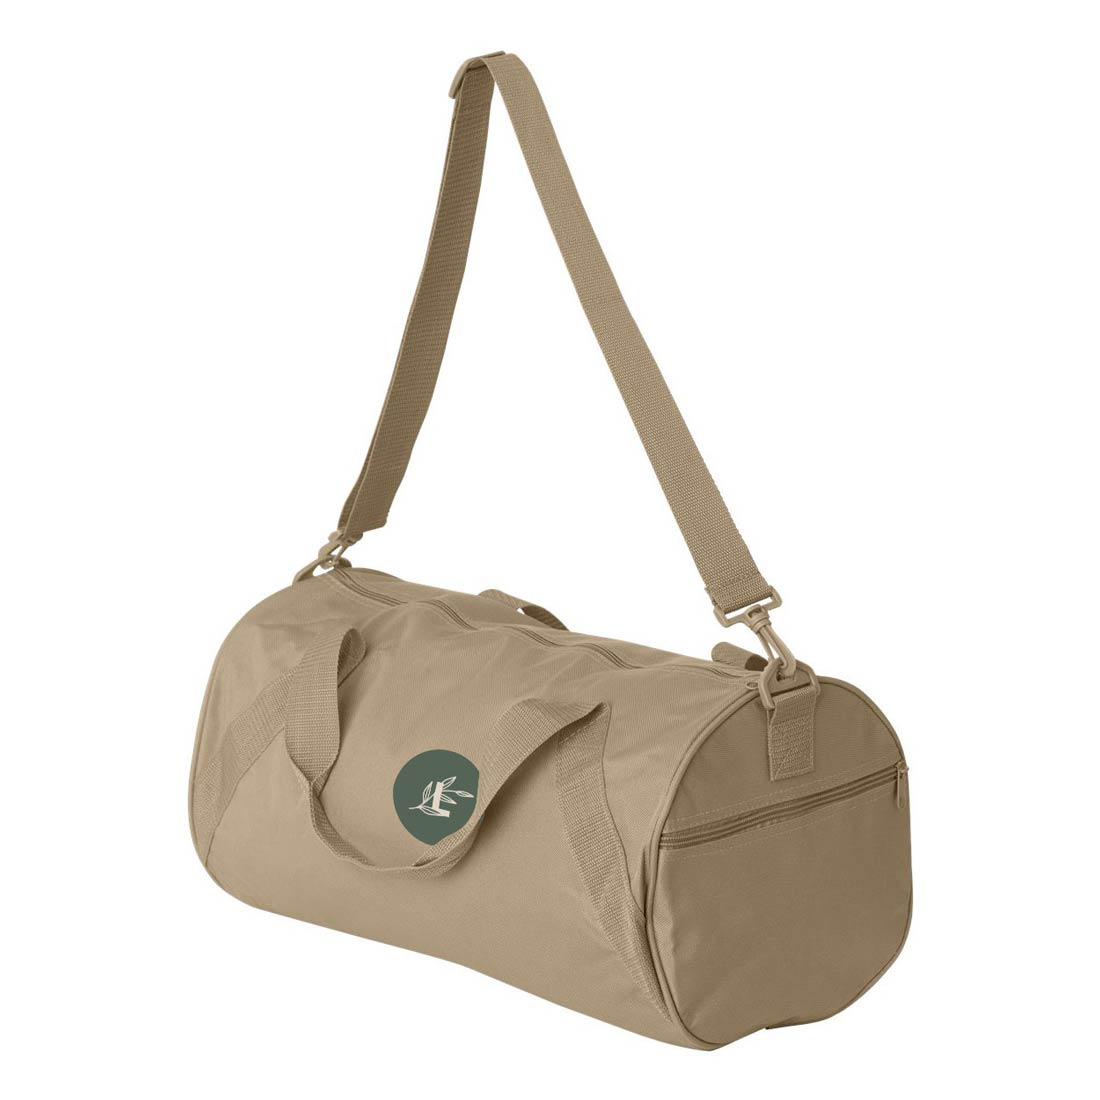 287836 alex recycled duffel bag two color one location imprint